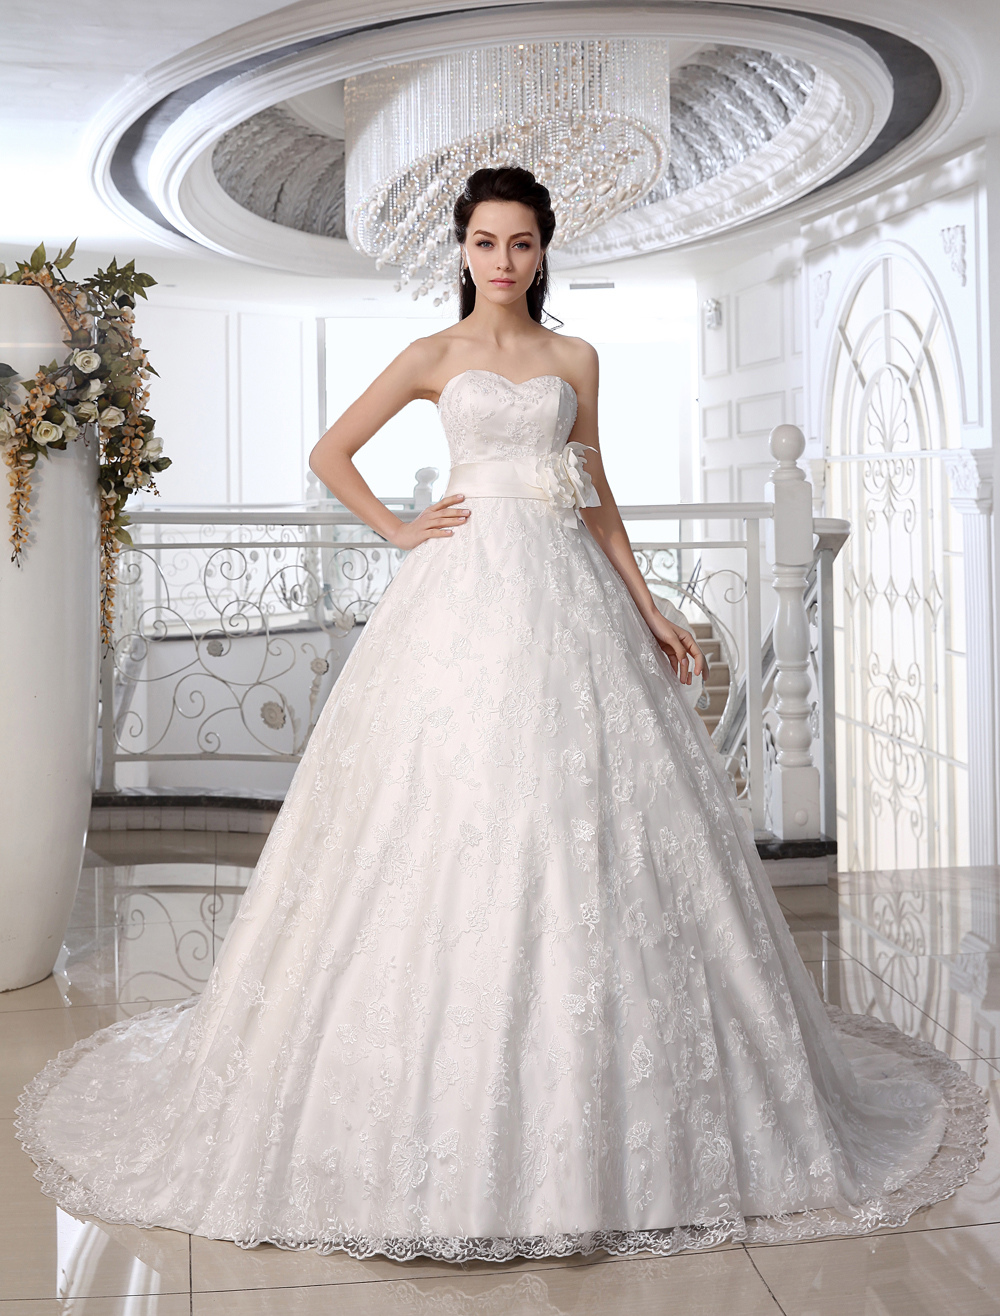 Buy Lace Wedding Dresses Strapless Ivory Ball Gown Bridal Dress Sweetheart Neck Beading Flower Sash Court Train Wedding Gown for $179.99 in Milanoo store